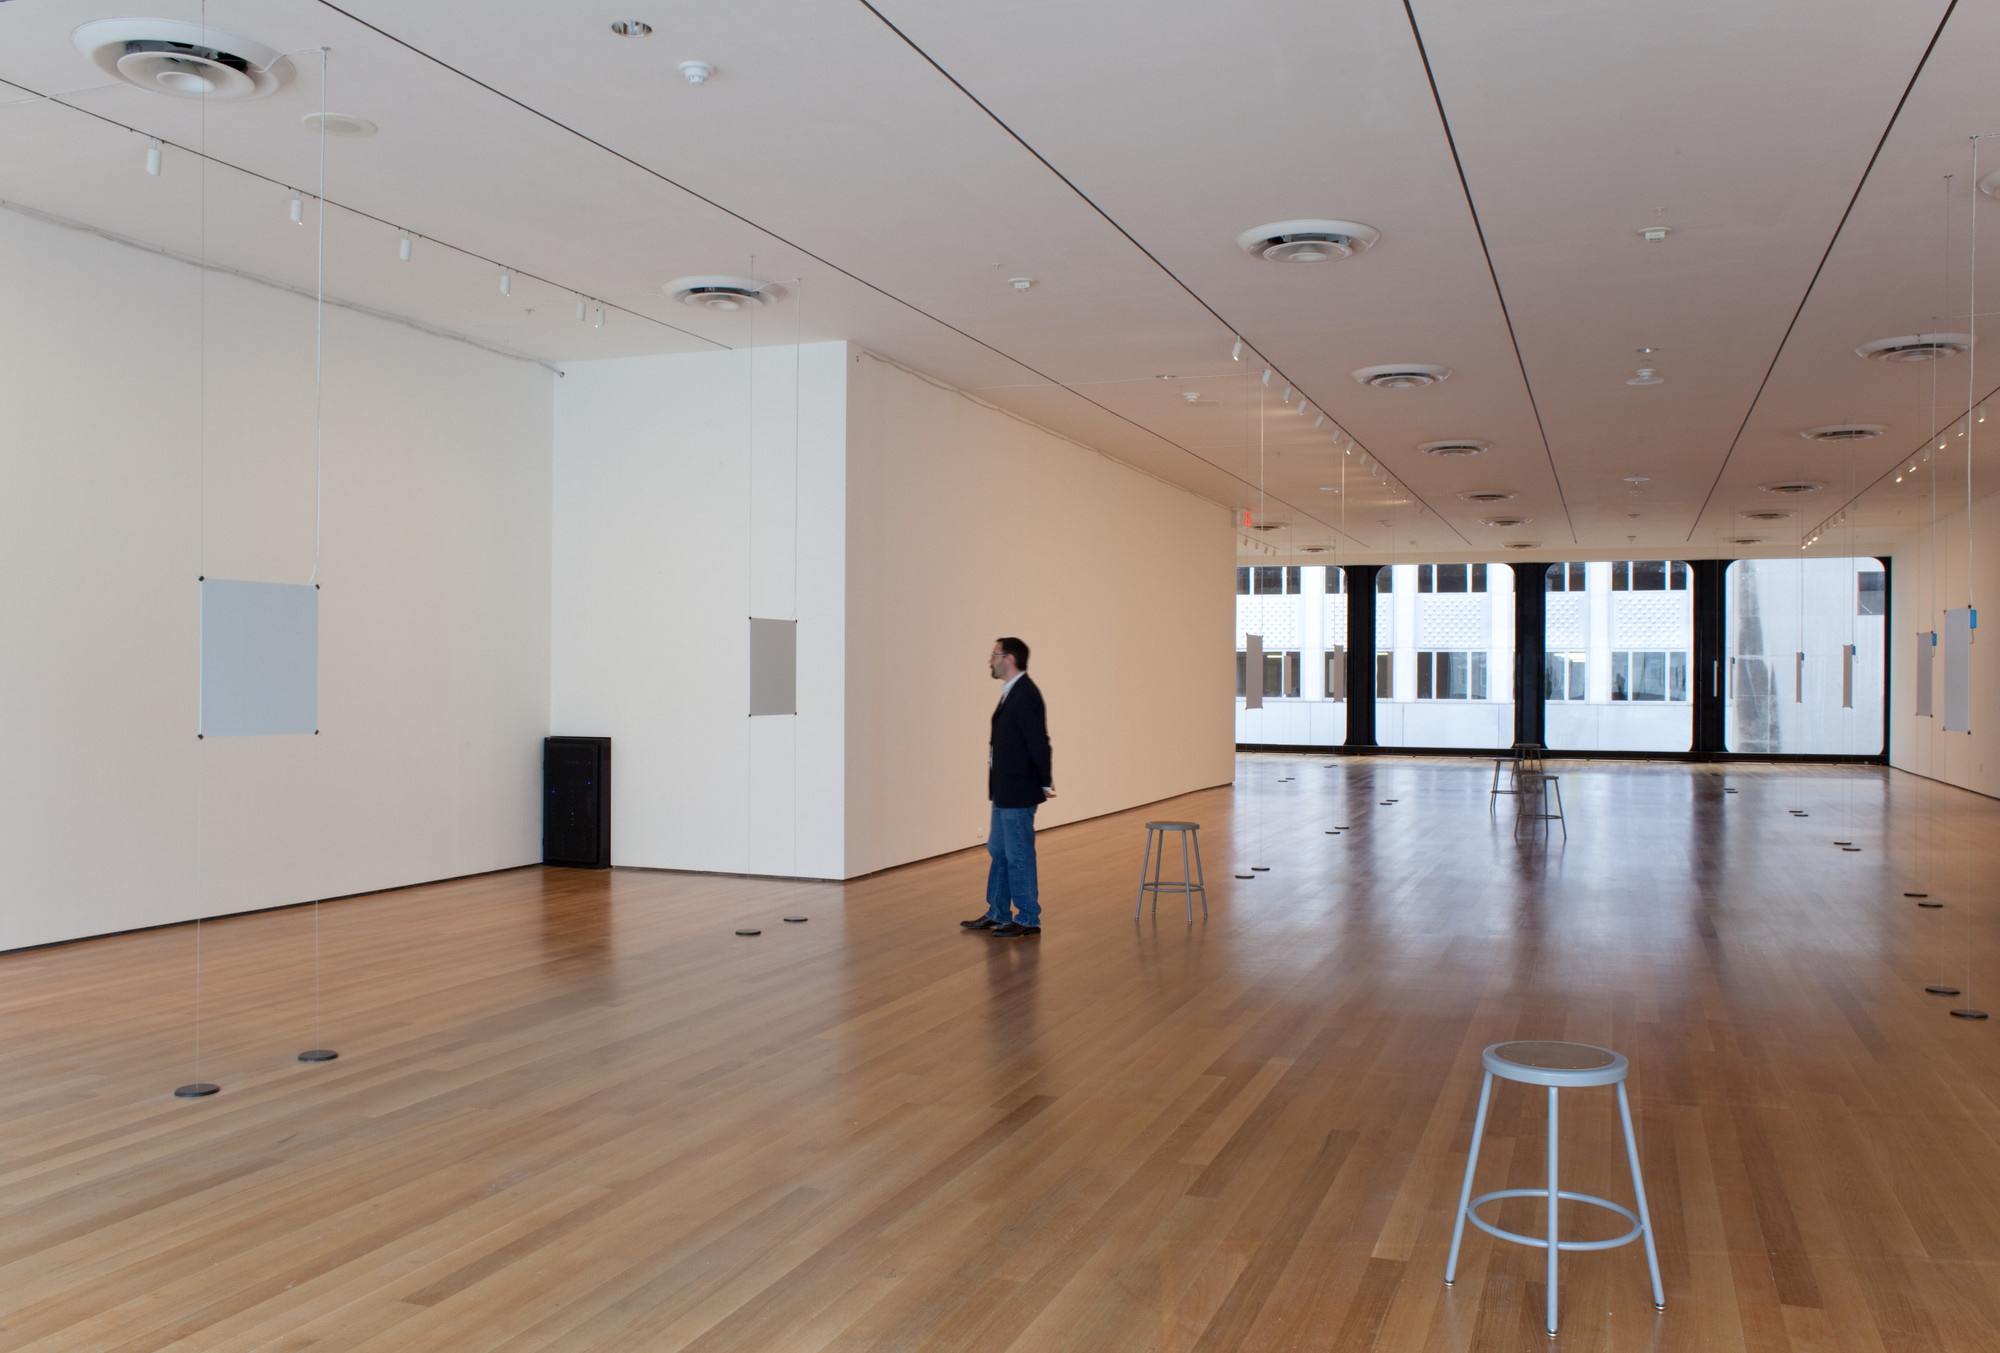 Bruce Nauman. Days. 2009. Stereo audio files, speakers, amplifiers, and additional equipment. The Museum of Modern Art, New York, Committee on Painting and Sculpture Funds, gift of The Mimi and Peter Haas Fund, Agnes Gund, The Hess Foundation, Michael Ovitz, Jerry I. Speyer, Marie-Josée and Henry R. Kravis Foundation, Donald B. Marron, and The Jill and Peter Kraus Contemporary Acquisition Fund and Emanuel Hoffmann Foundation, gift of the President, on permanent loan to Öffentliche Kunstsammlung Basel.